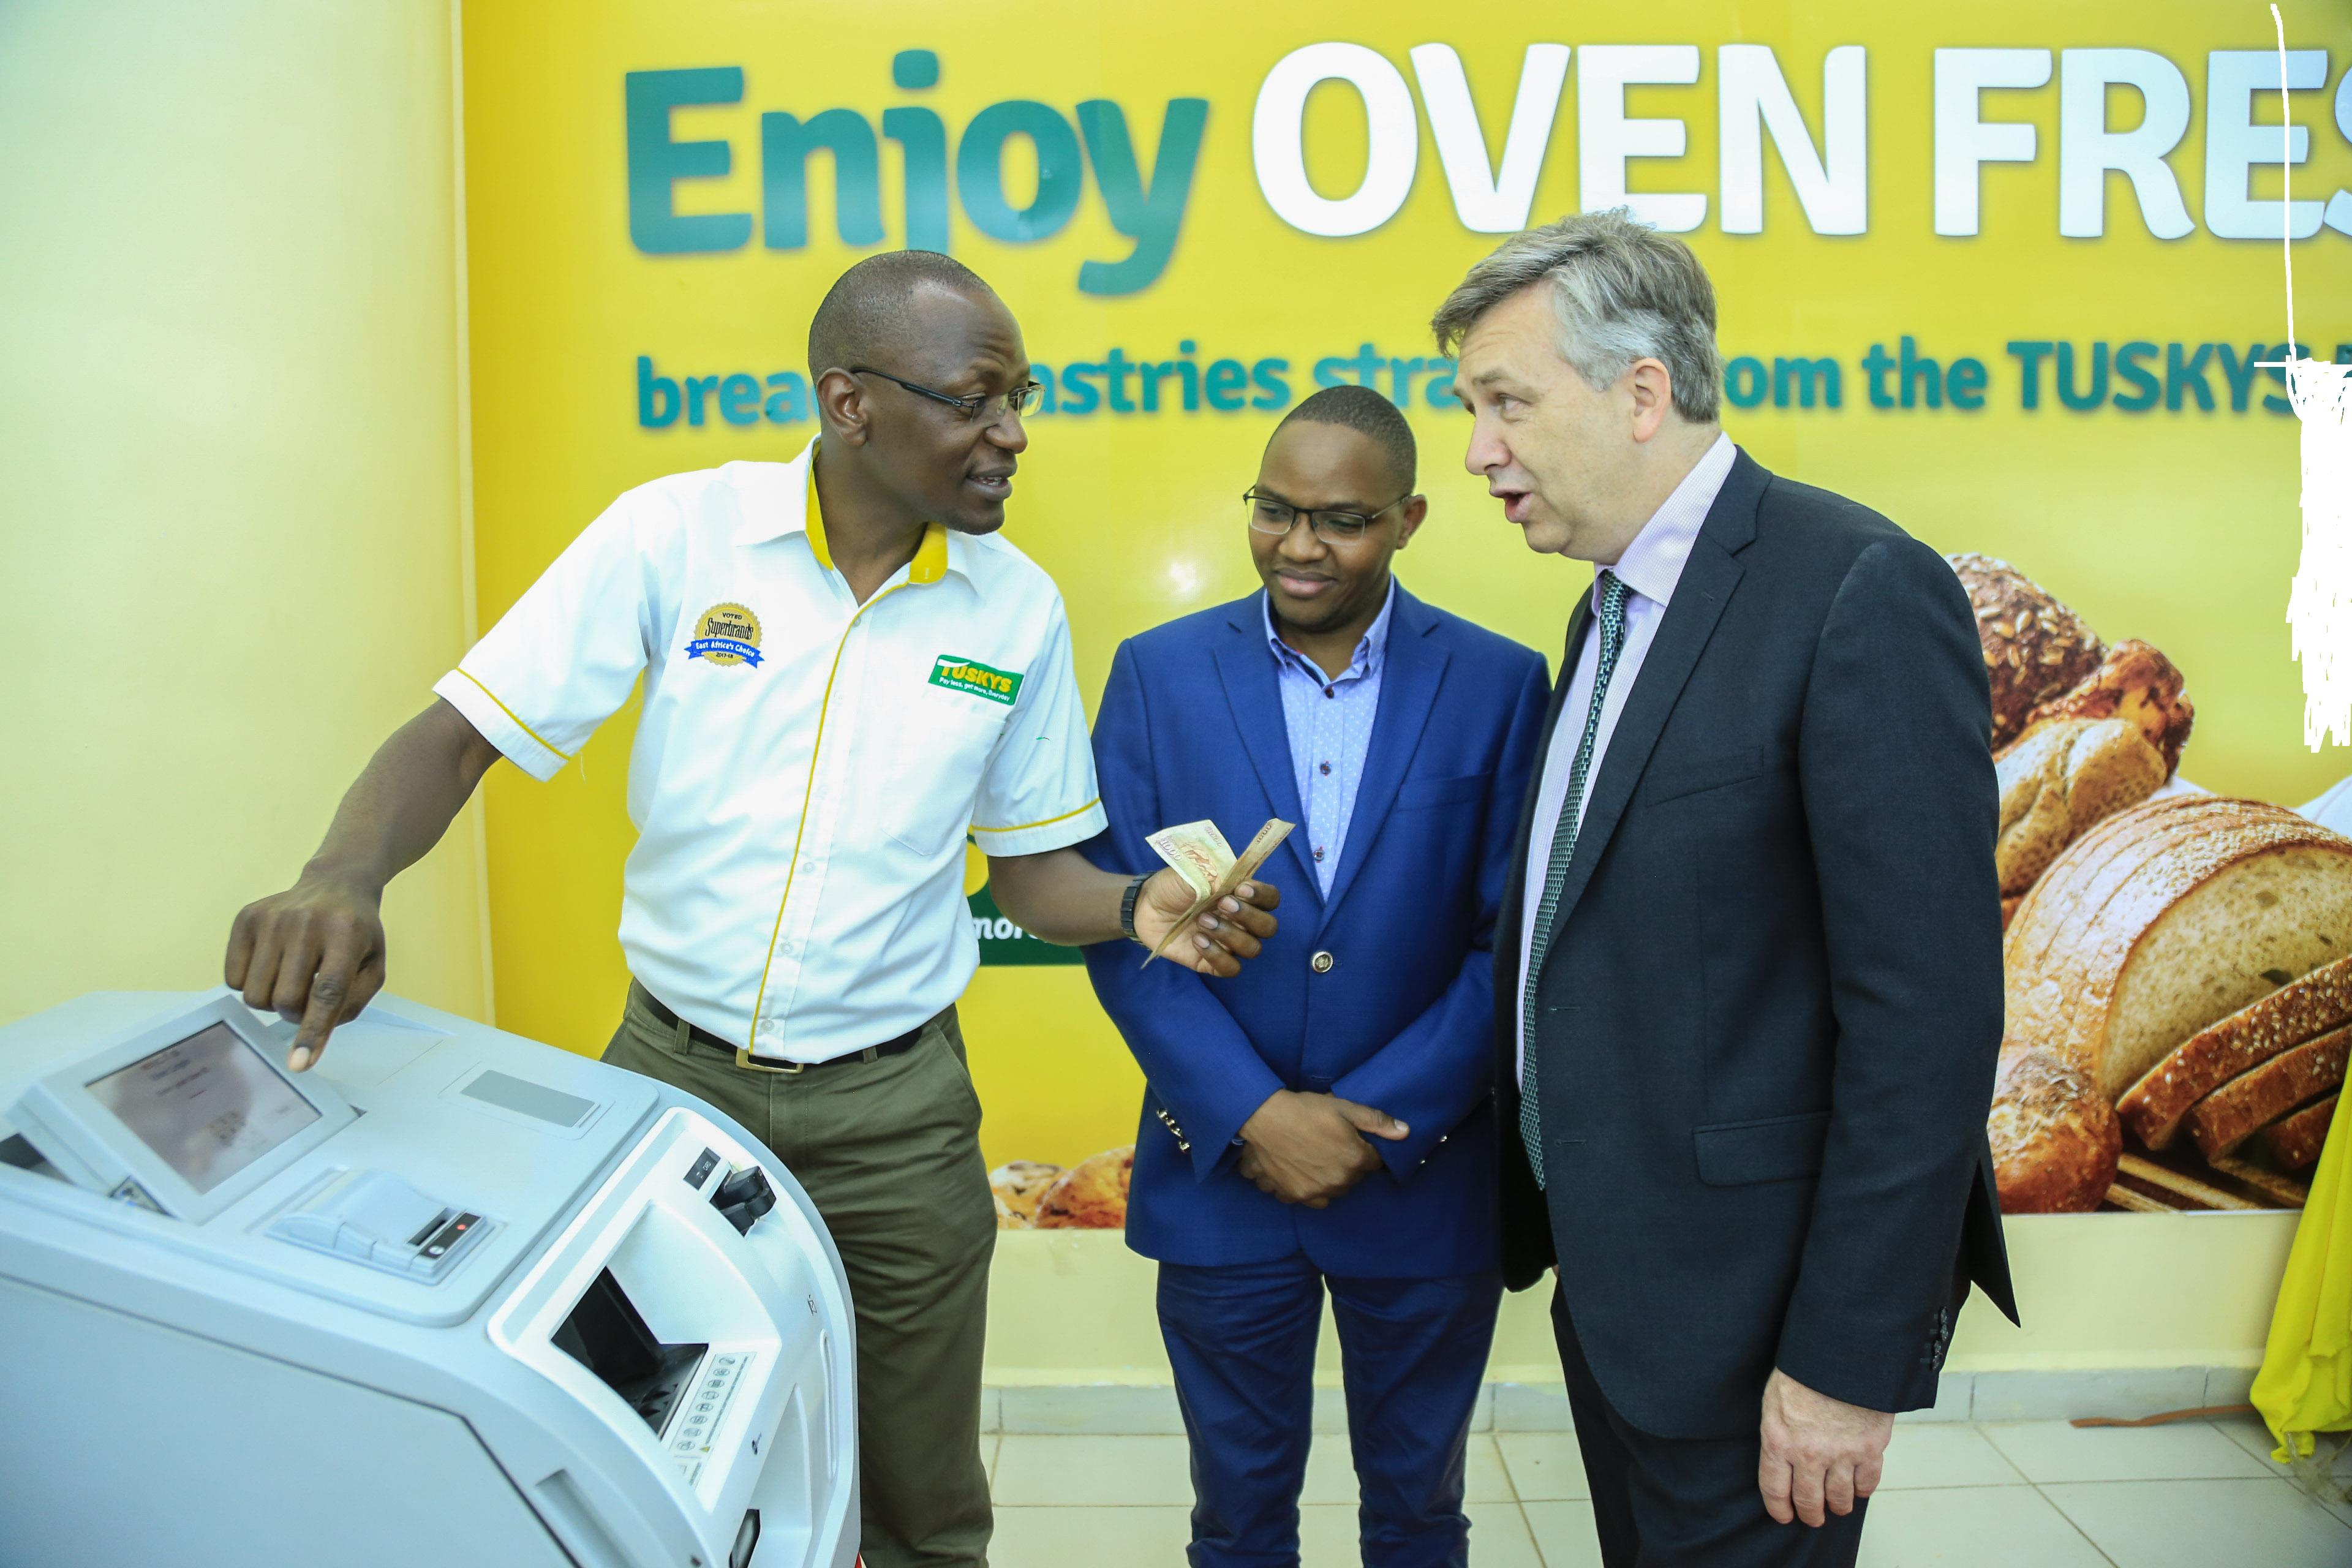 Tuskys installs intelligent Cash Deposit Machines to facilitate the convenient bank deposit of its kshs 100million daily collections